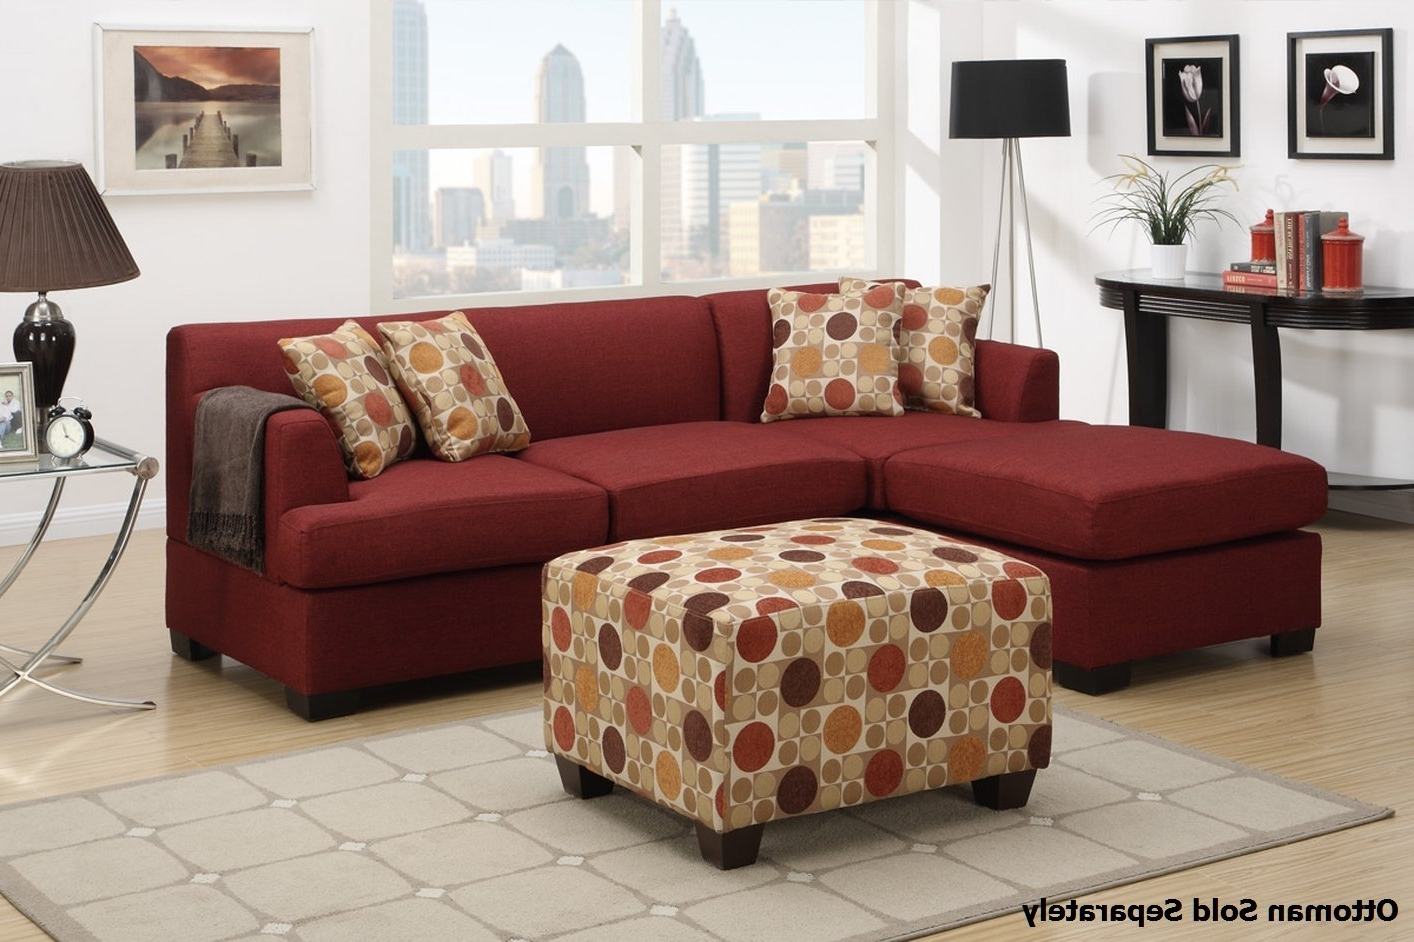 Red Sectional Sofas With Ottoman For Most Recent Montreal Ii Red Fabric Sectional Sofa – Steal A Sofa Furniture (View 14 of 15)